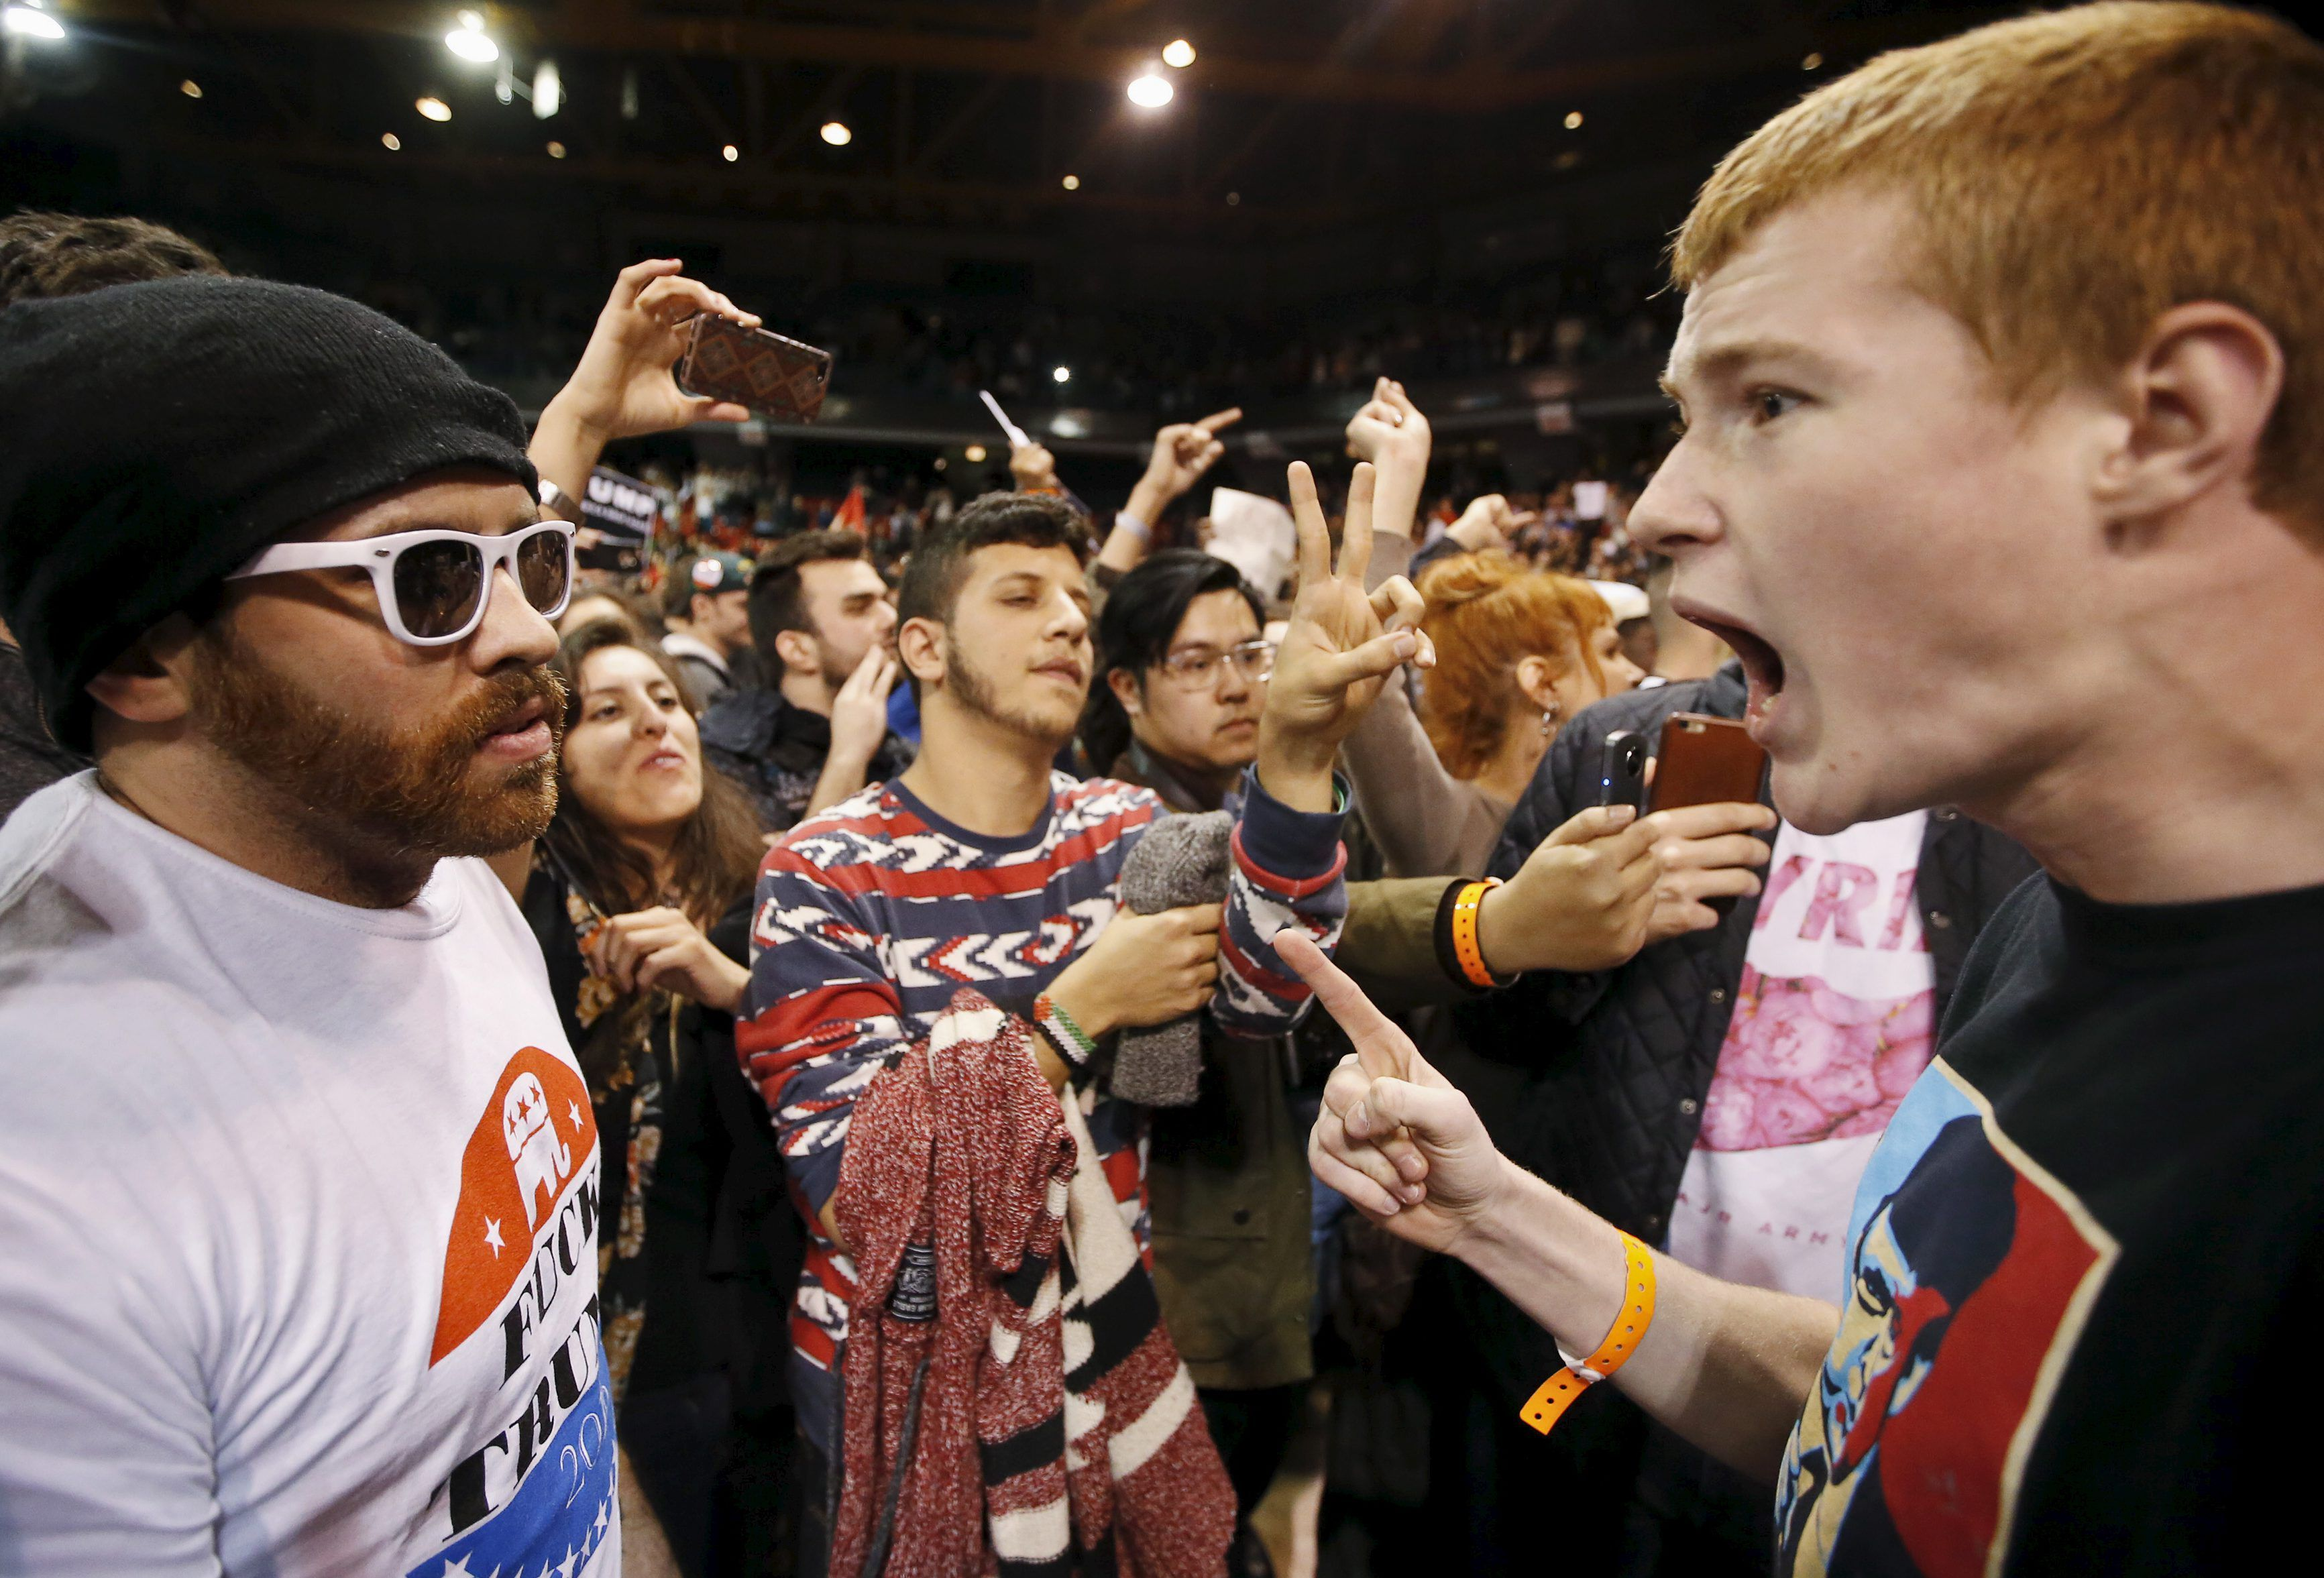 A Trump supporter (R) yells at a demonstrator (L) after Republican U.S. presidential candidate Donald Trump cancelled his rally at the University of Illinois at Chicago March 11, 2016.